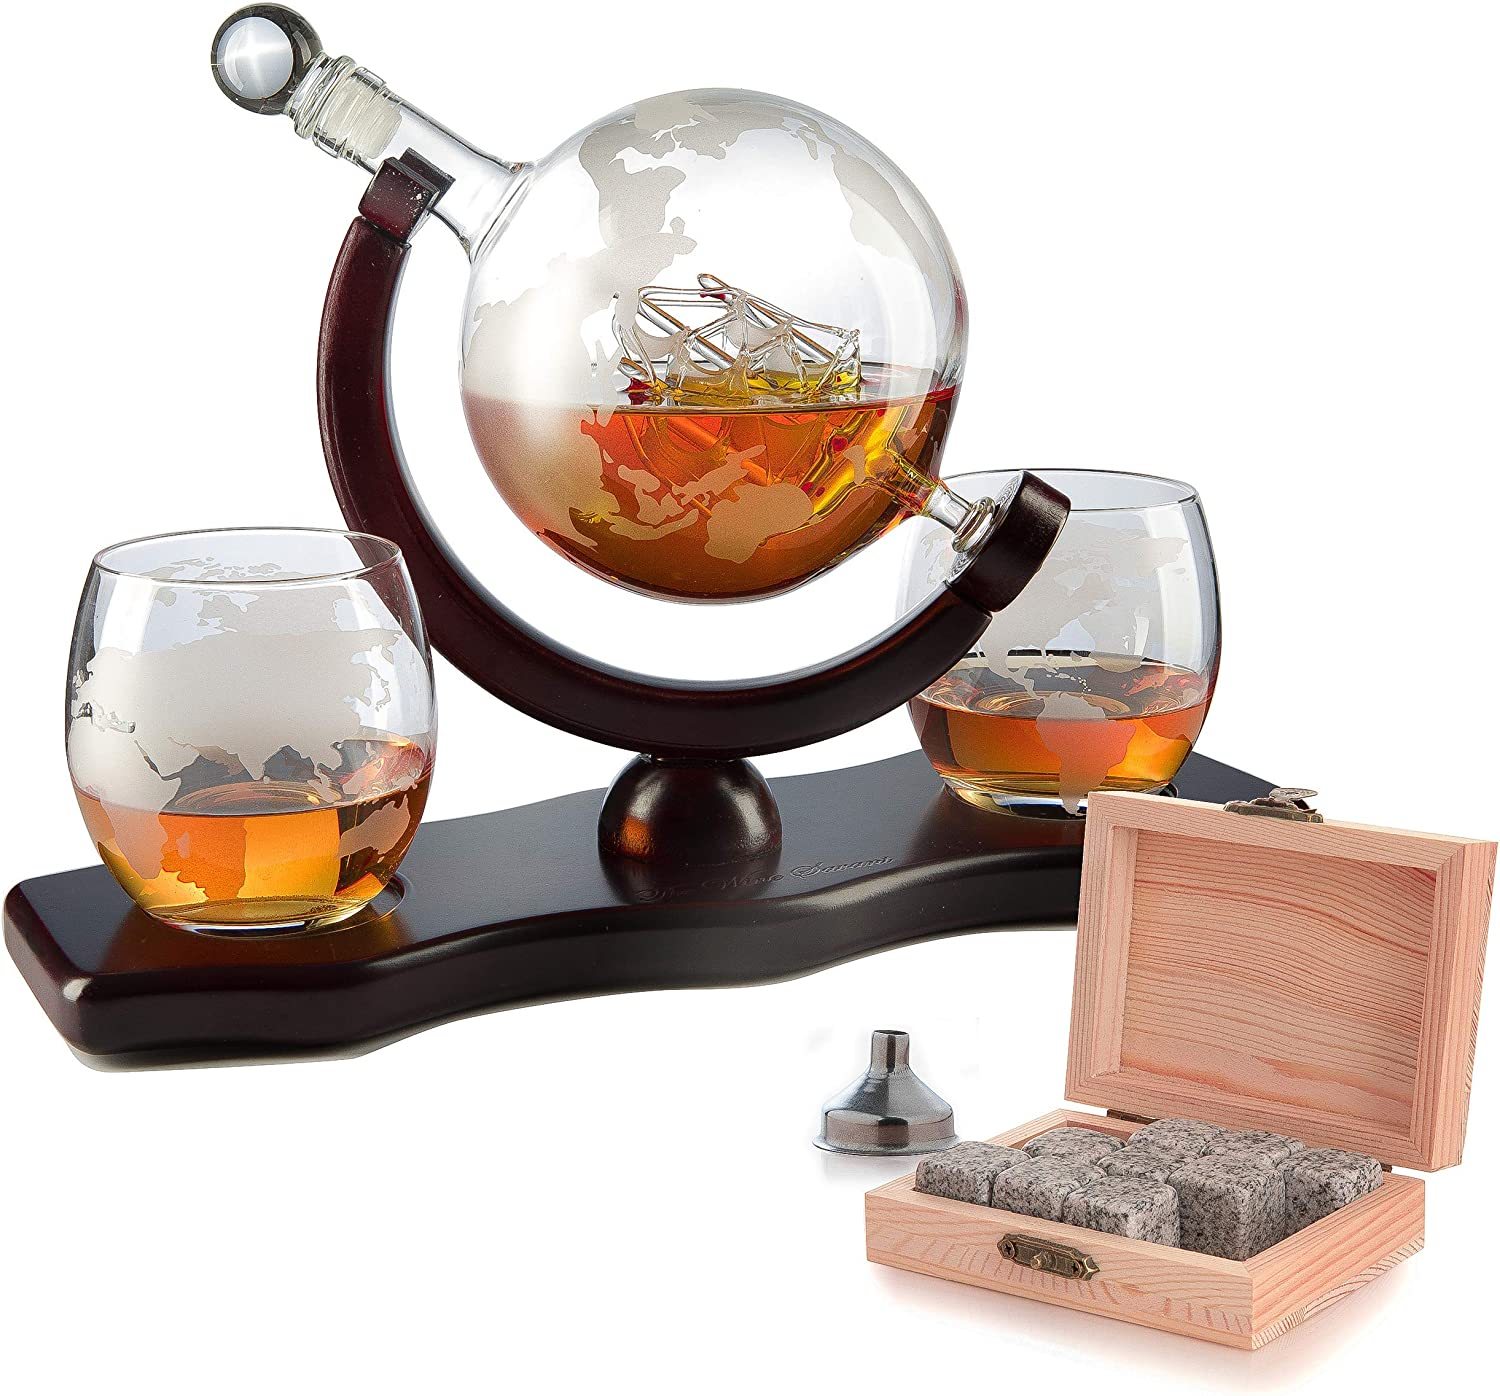 Whiskey Decanter Set Globe With 2 Etched Globe Whisky Glasses Comes With Whiskey Stones For Whiskey Scotch Bourbon 850ml Amazon Ca Home Kitchen